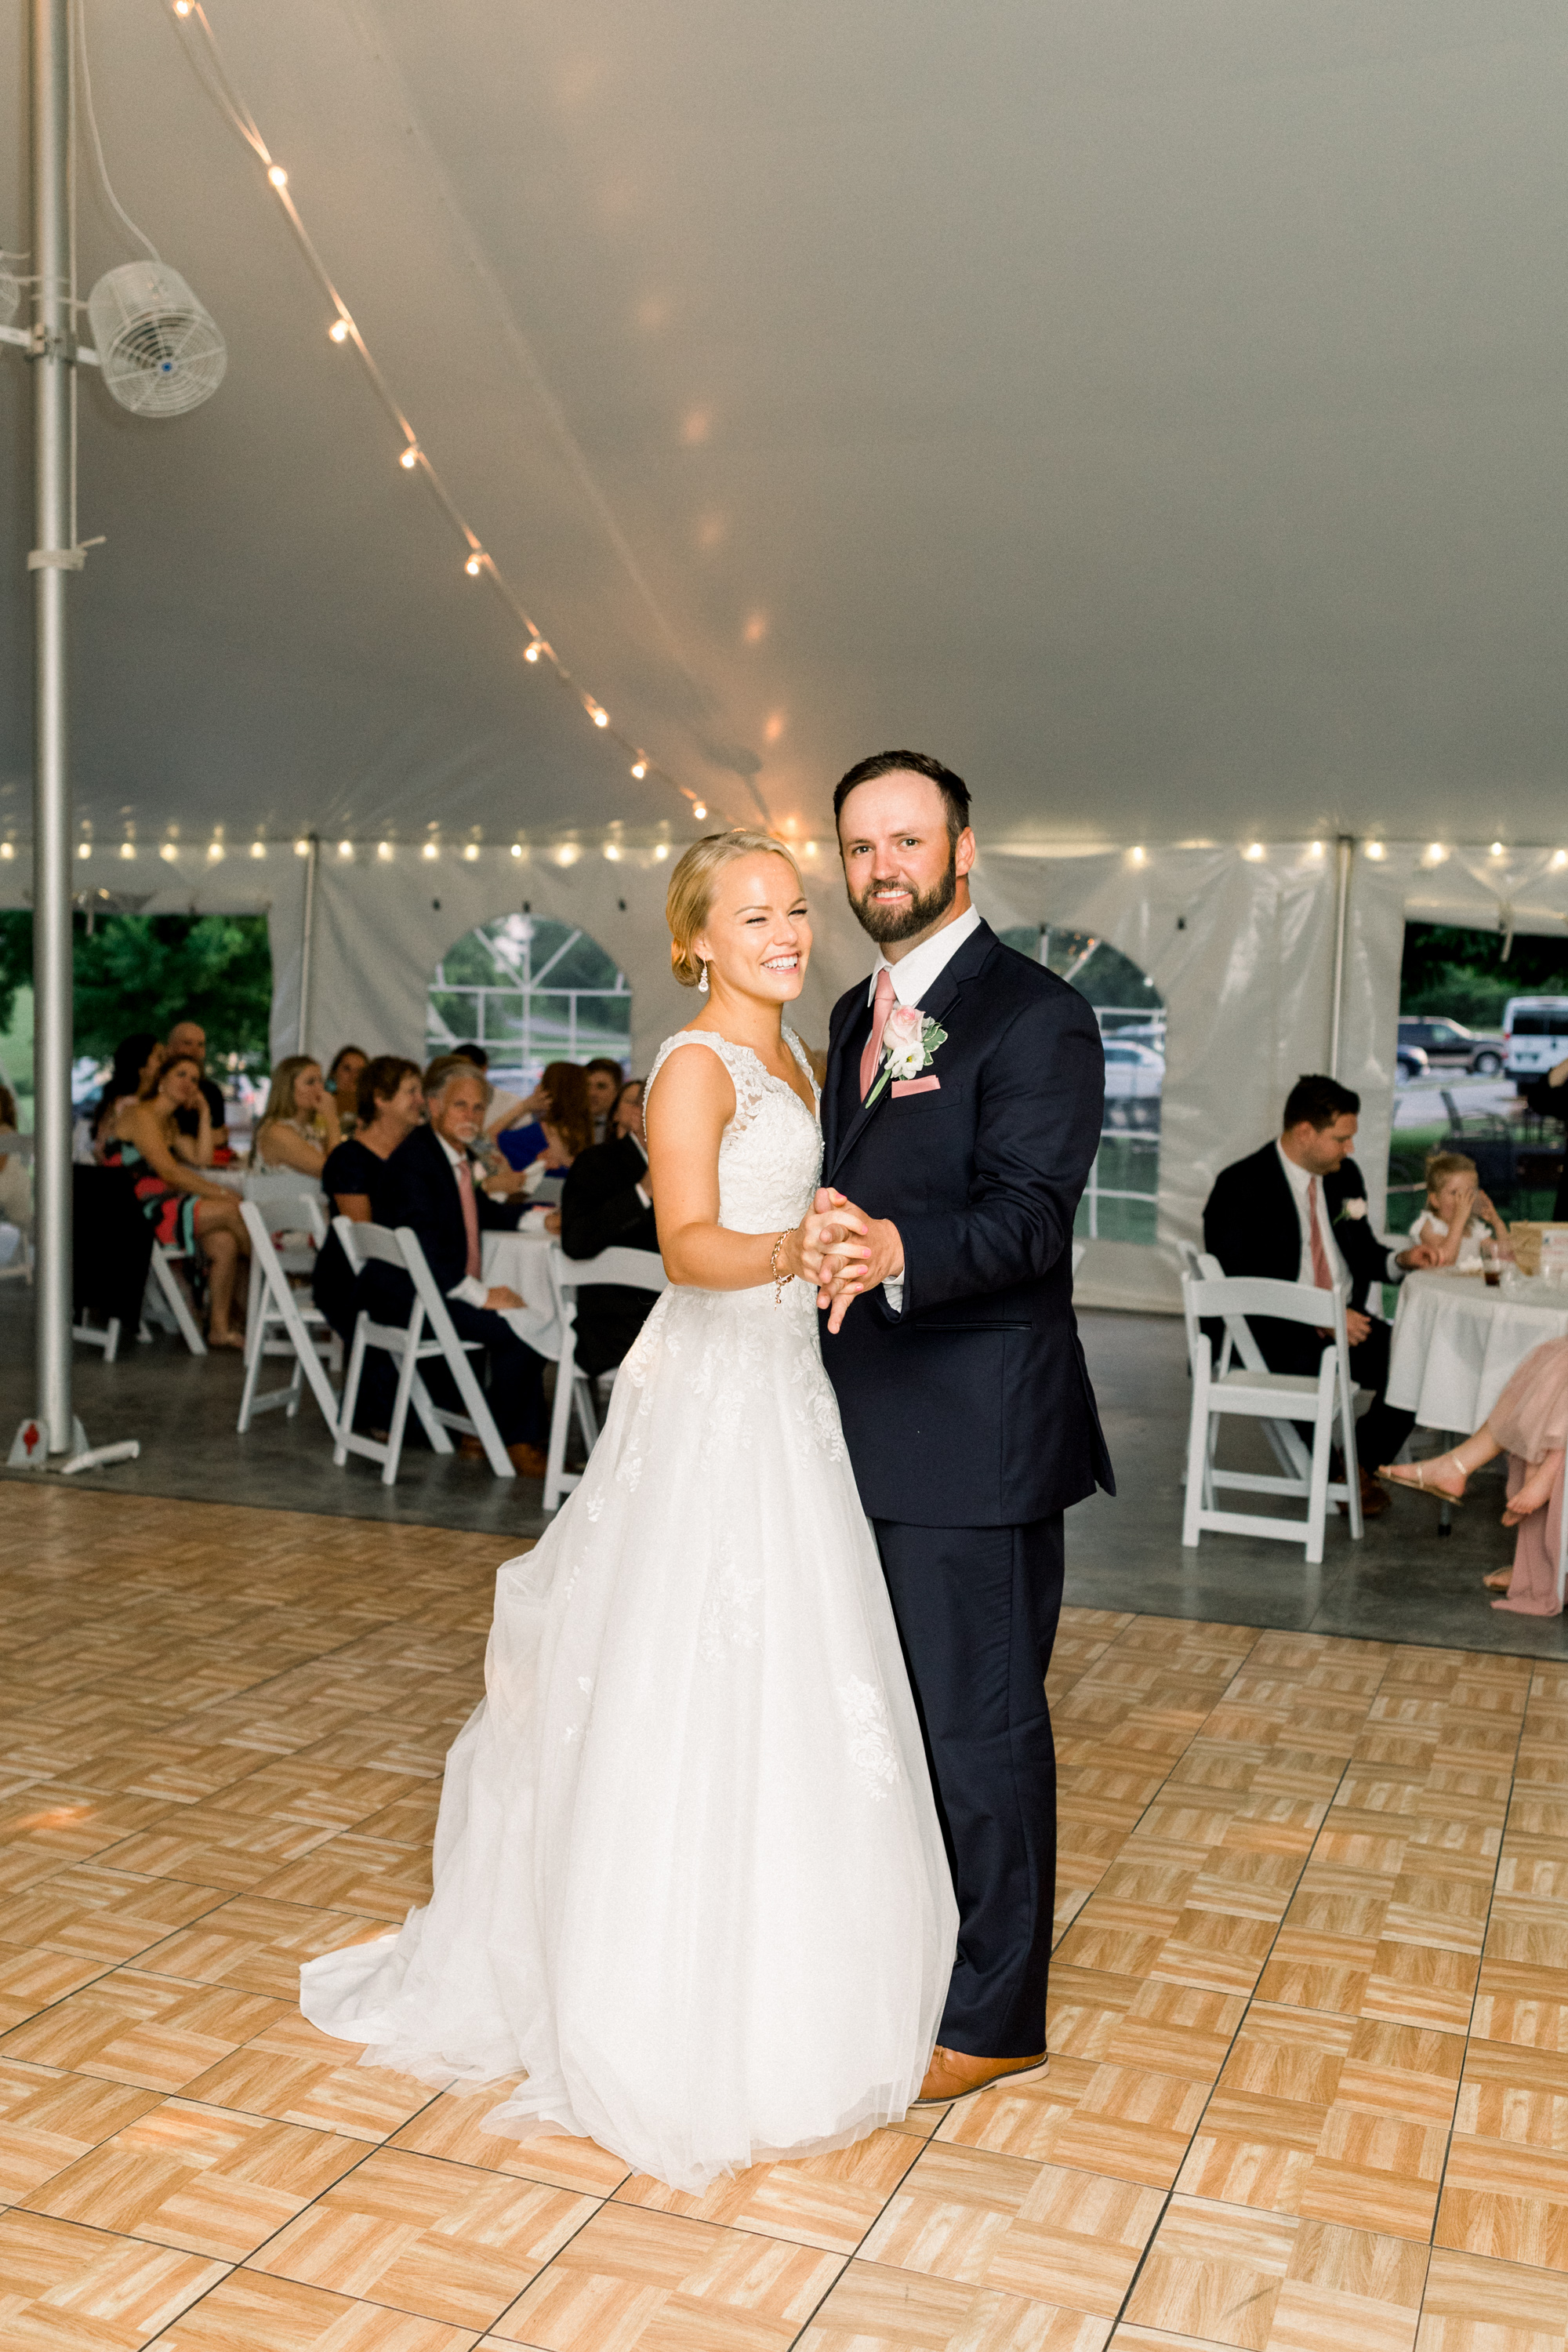 Molly + Dan wedding 6-7-19 (739 of 916).jpg